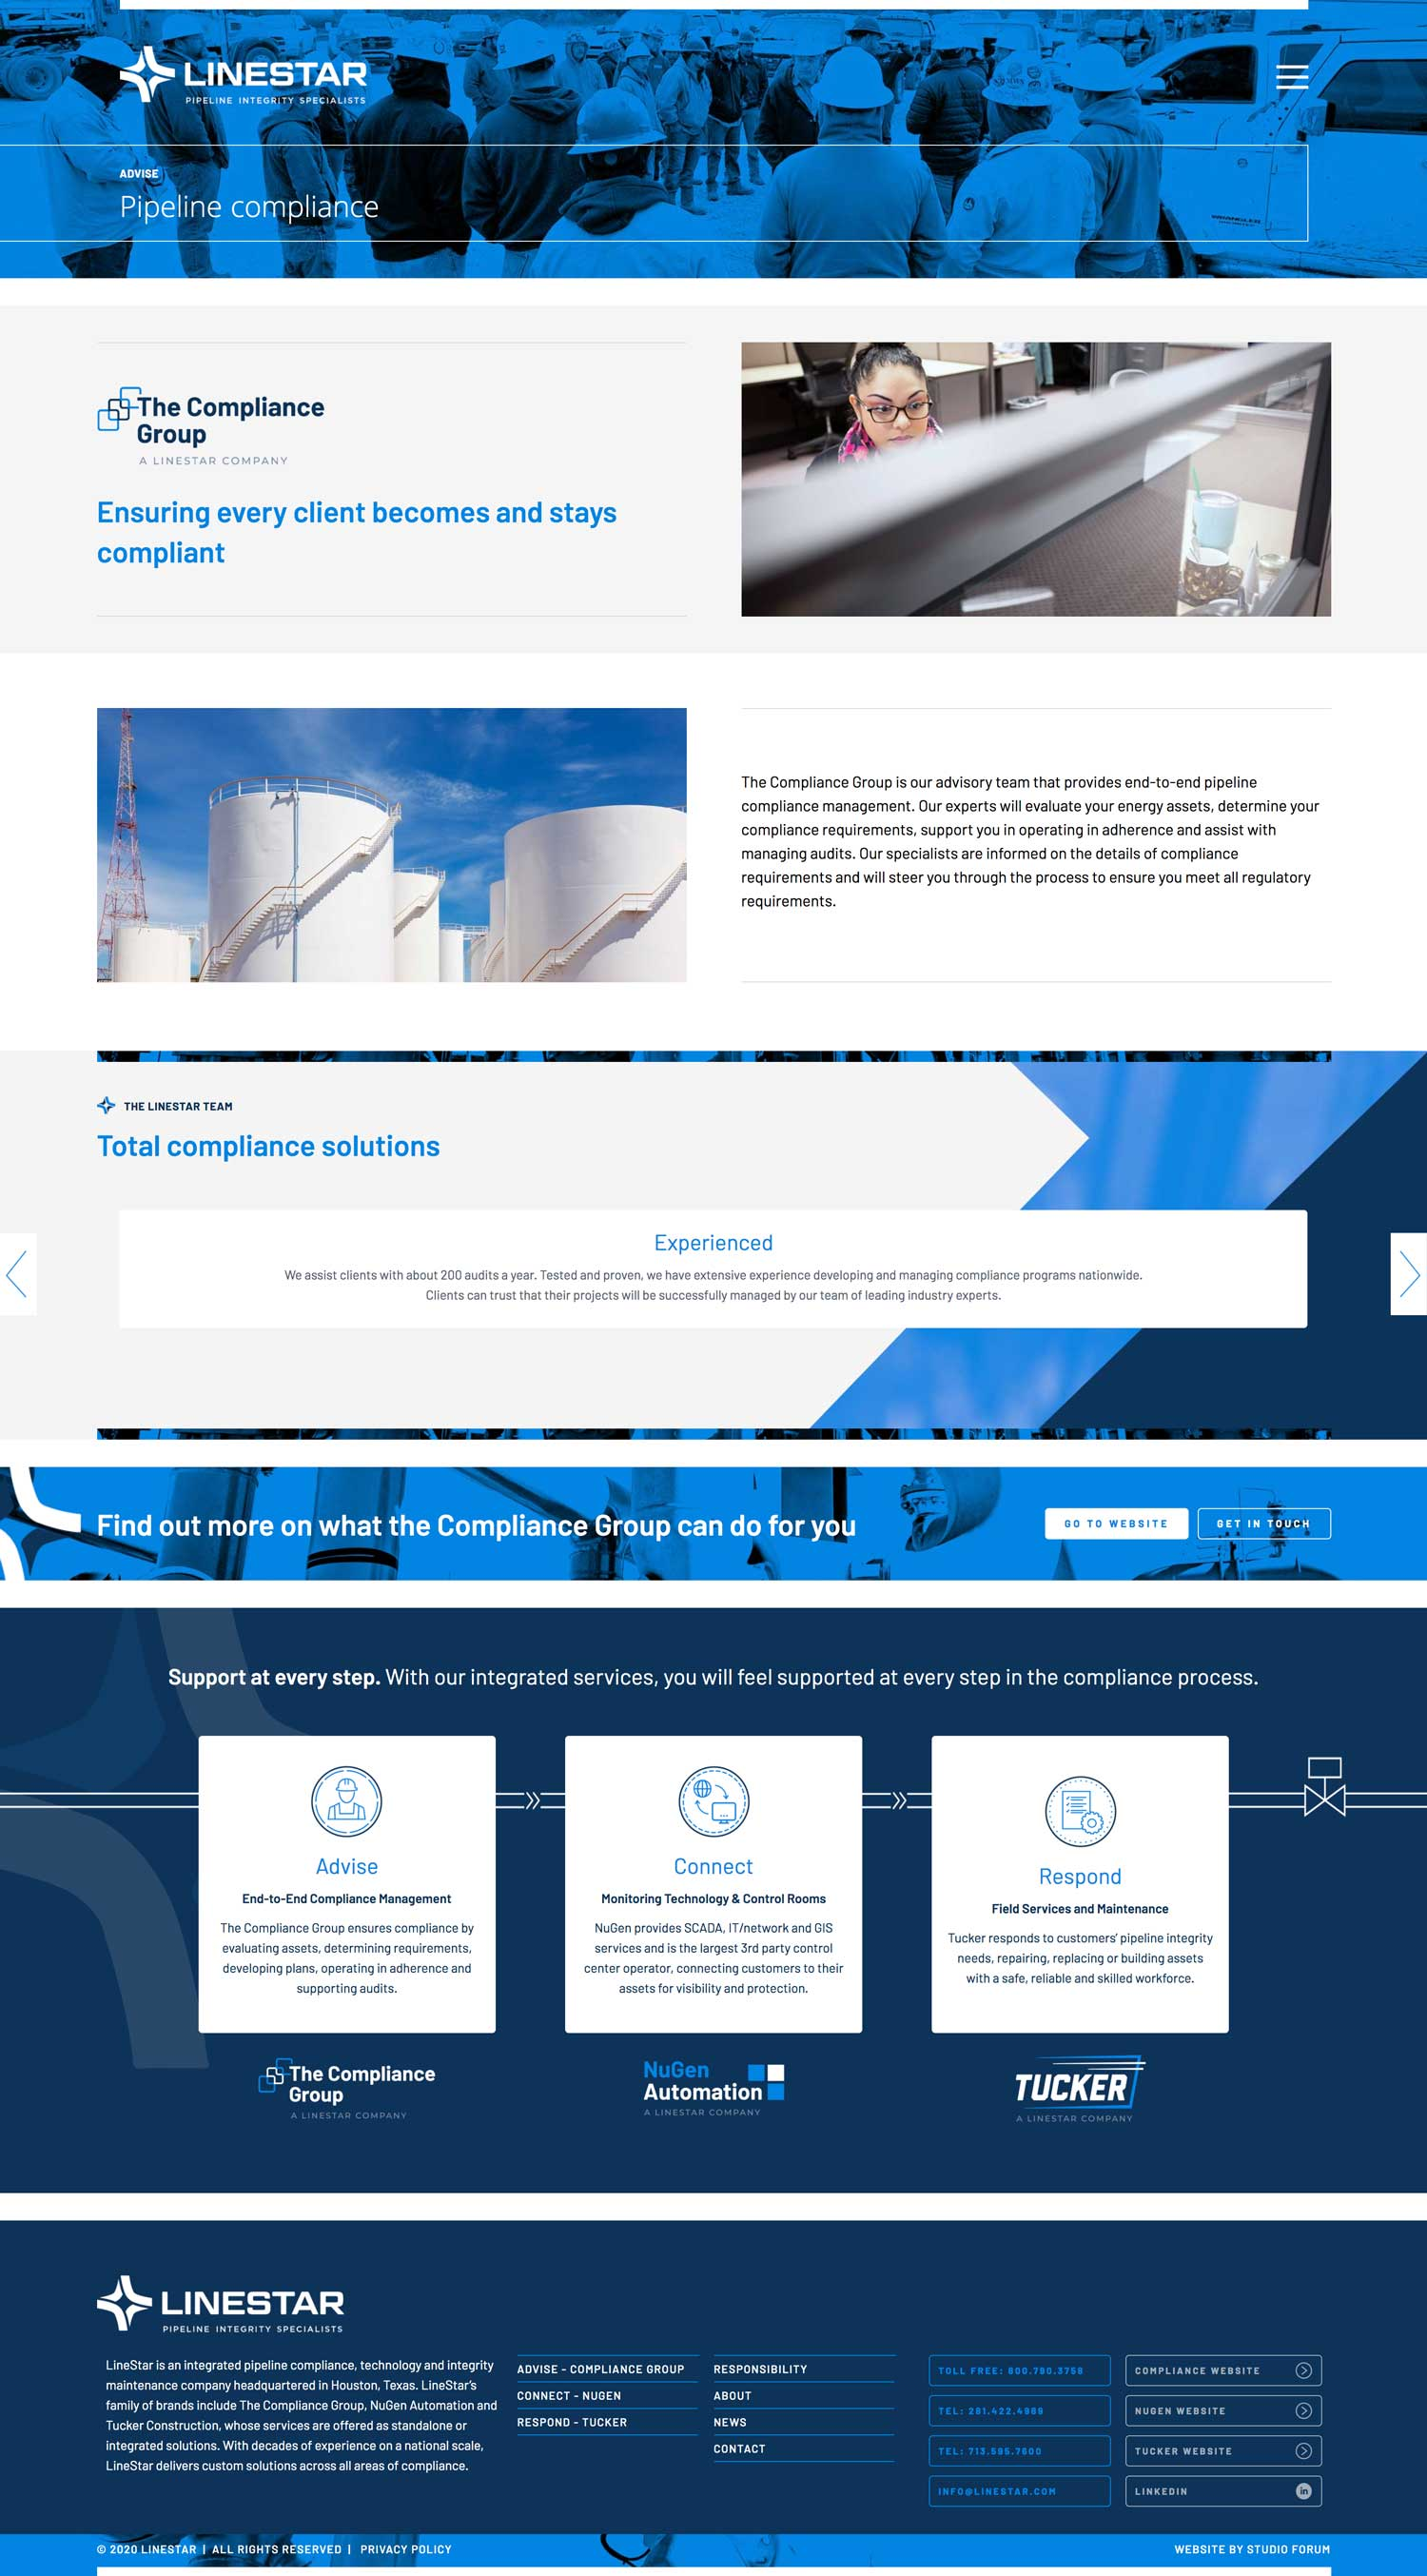 Linestar website page featuring the compliance group designed by studio forum